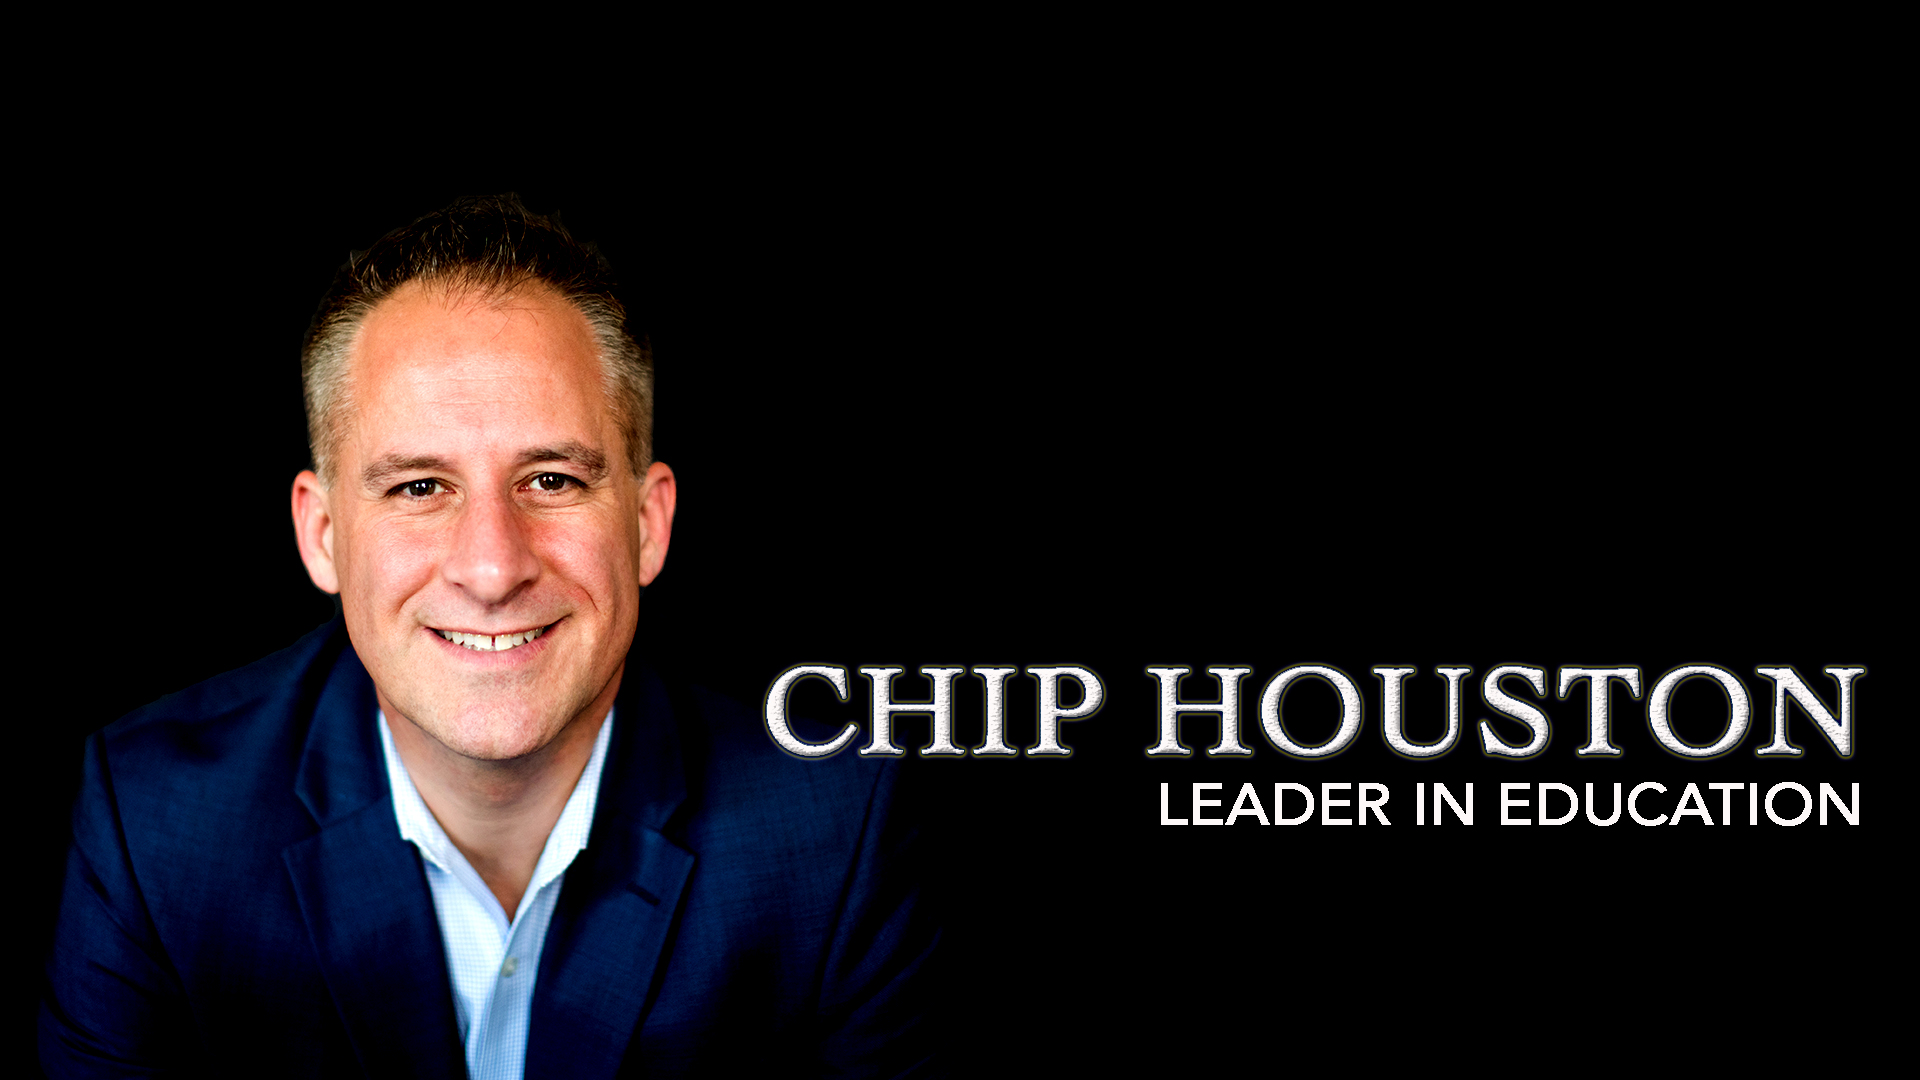 CHIP HOUSTON